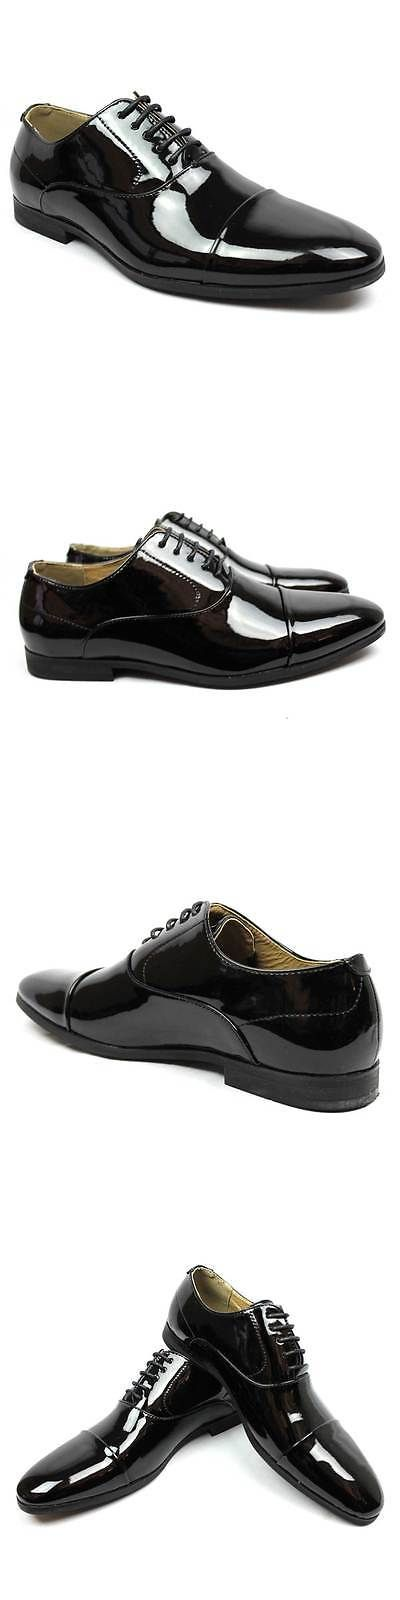 2d11b26bcab5 Other Mens Formal Occasion 114293  New Men S Black Tuxedo Cap Toe Lace Up  Oxford Dress Shoes Shiny Patent By Azar …